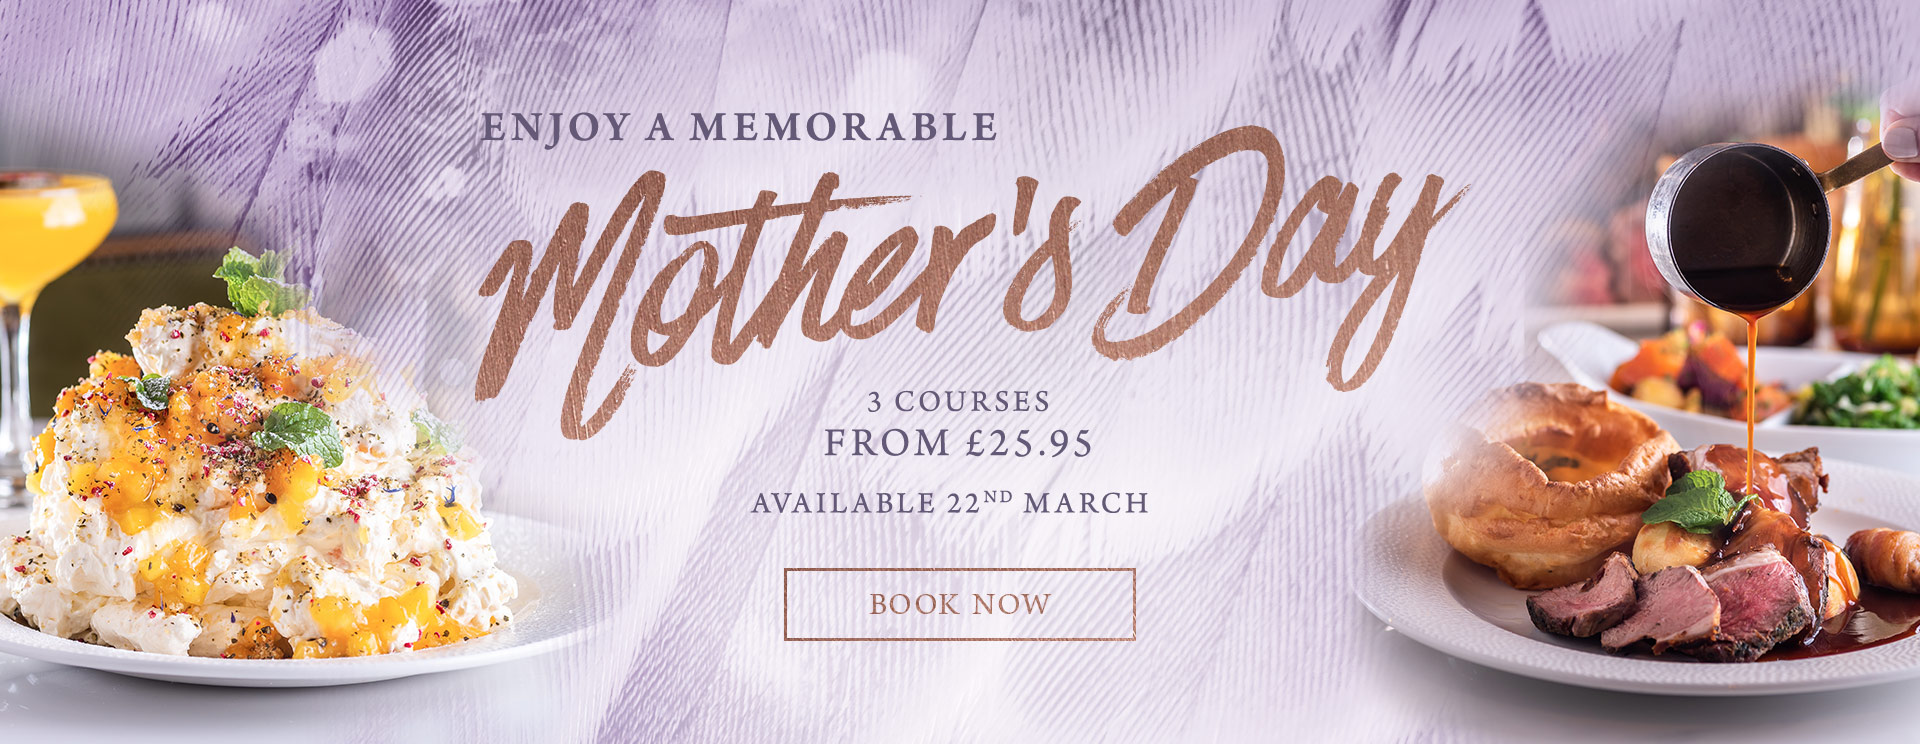 Mother's Day 2019 at The Langton